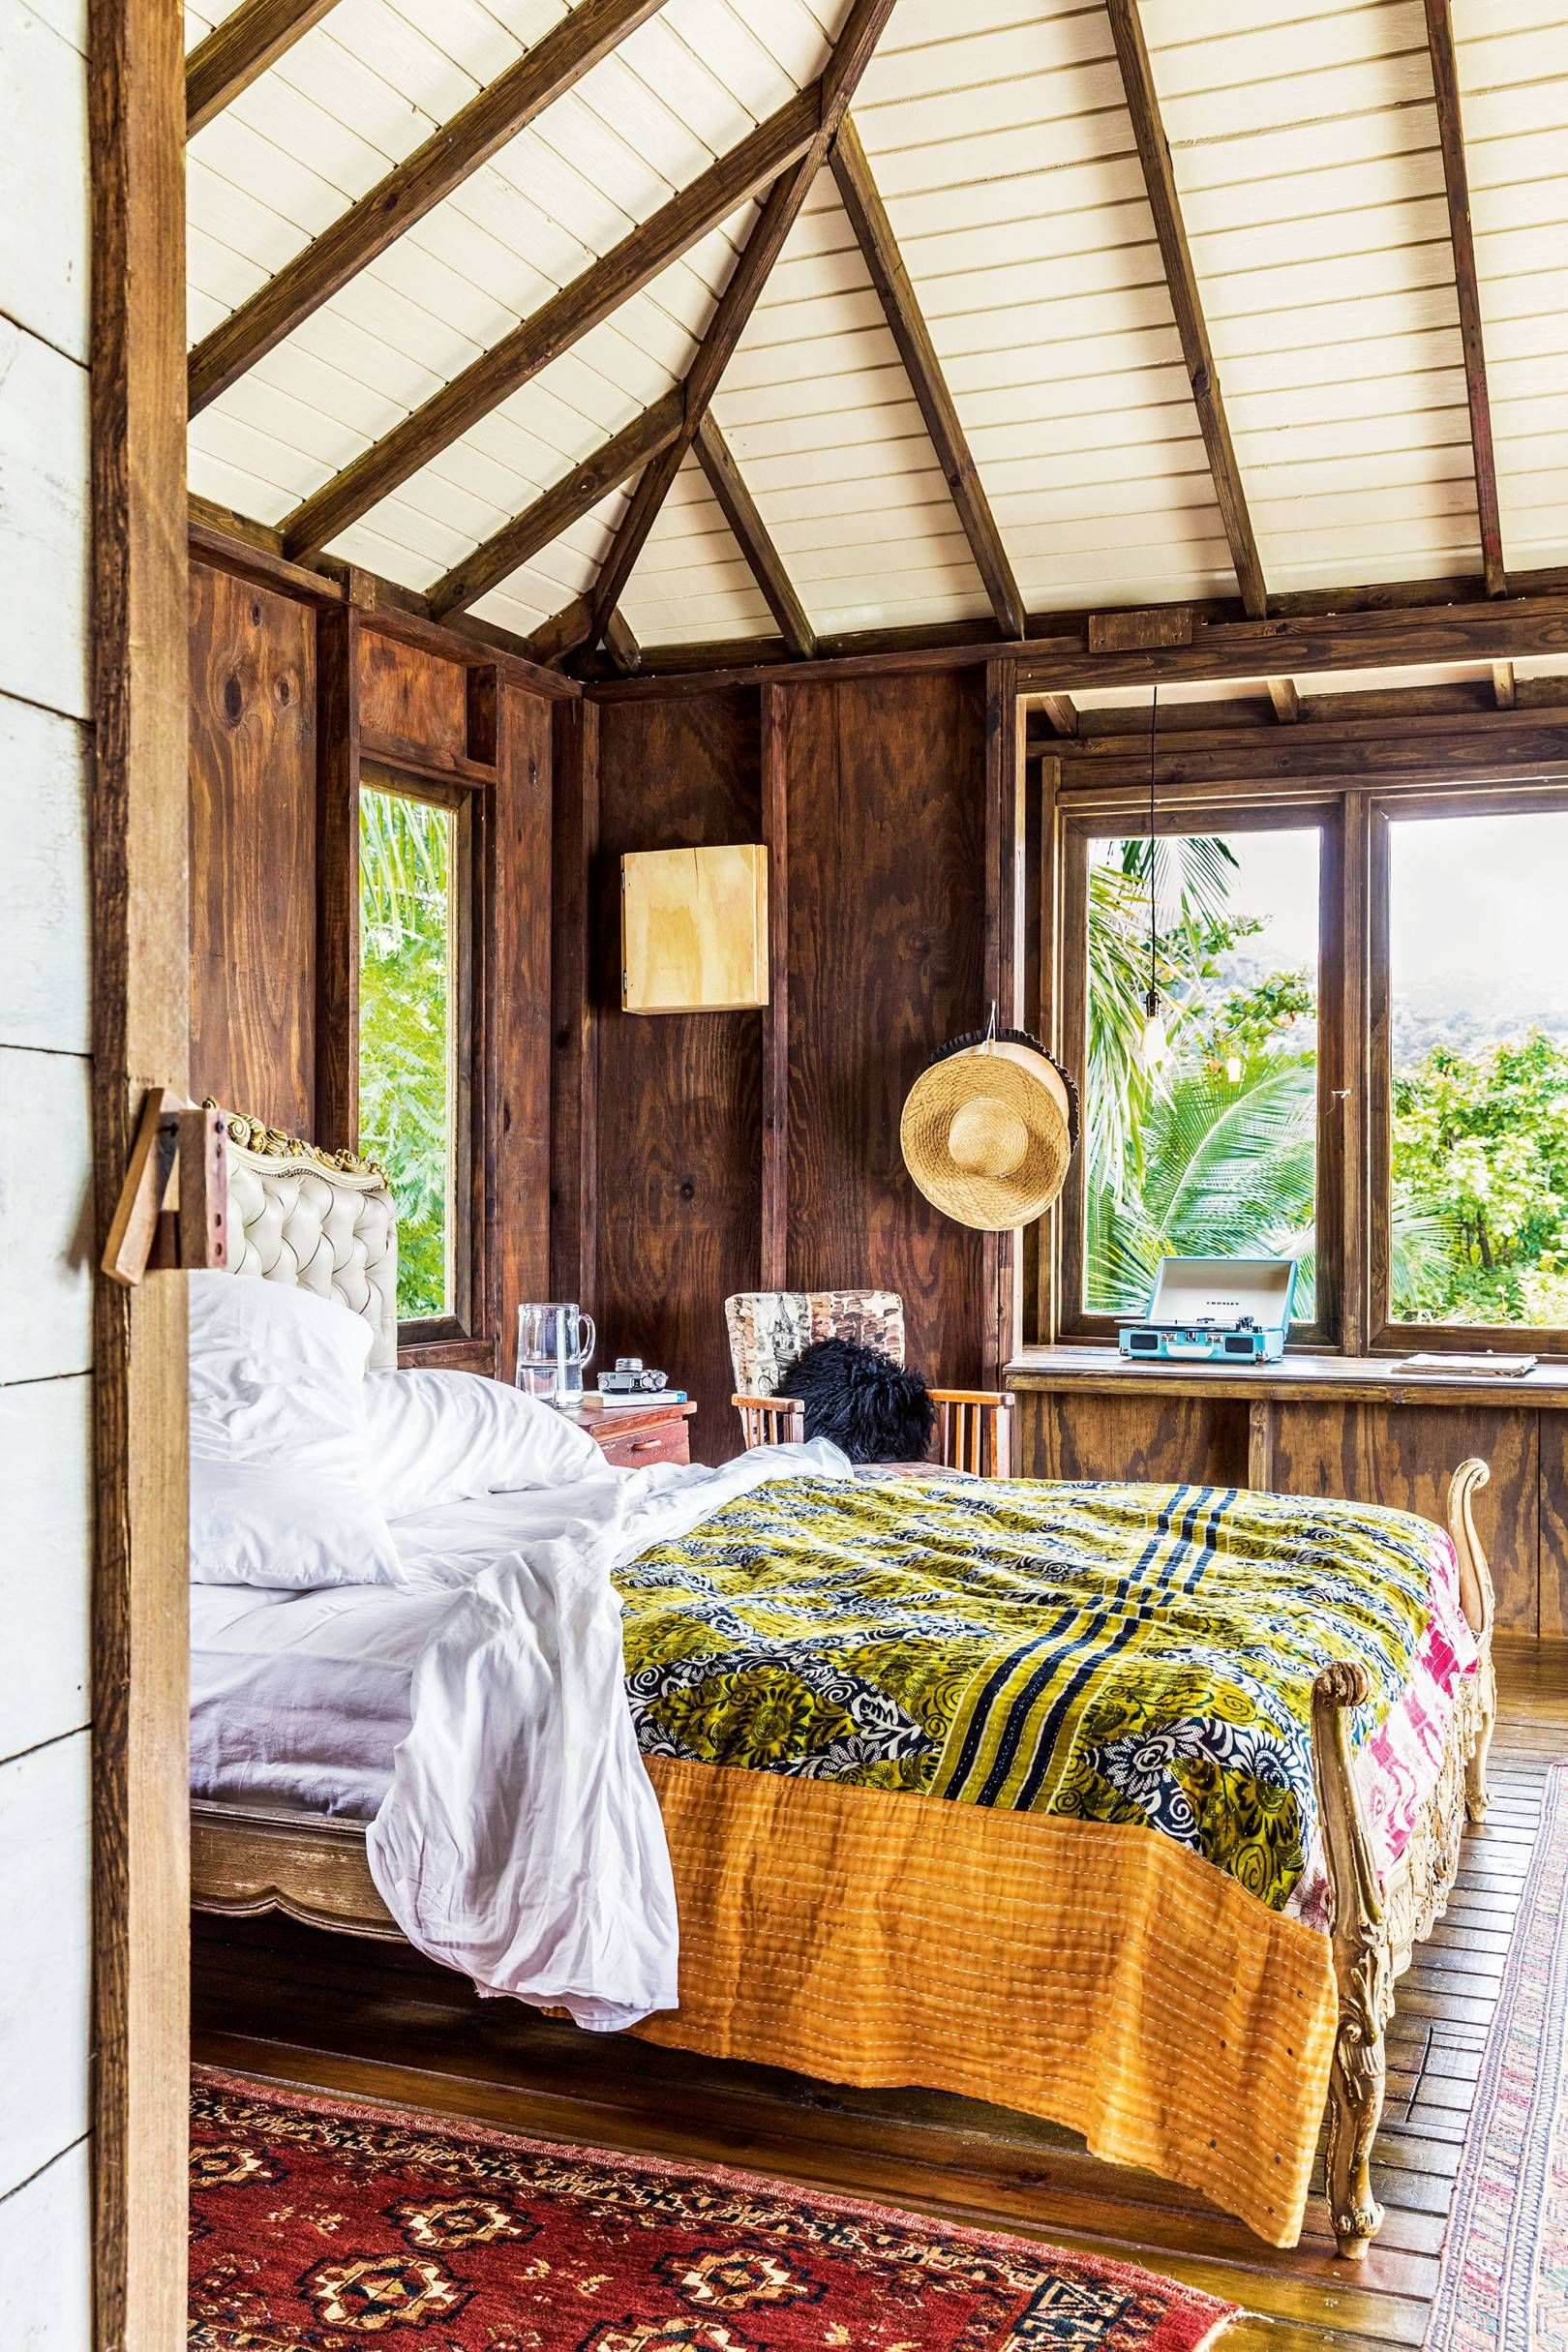 138 astoundingly beautiful and romantic hotel rooms ...